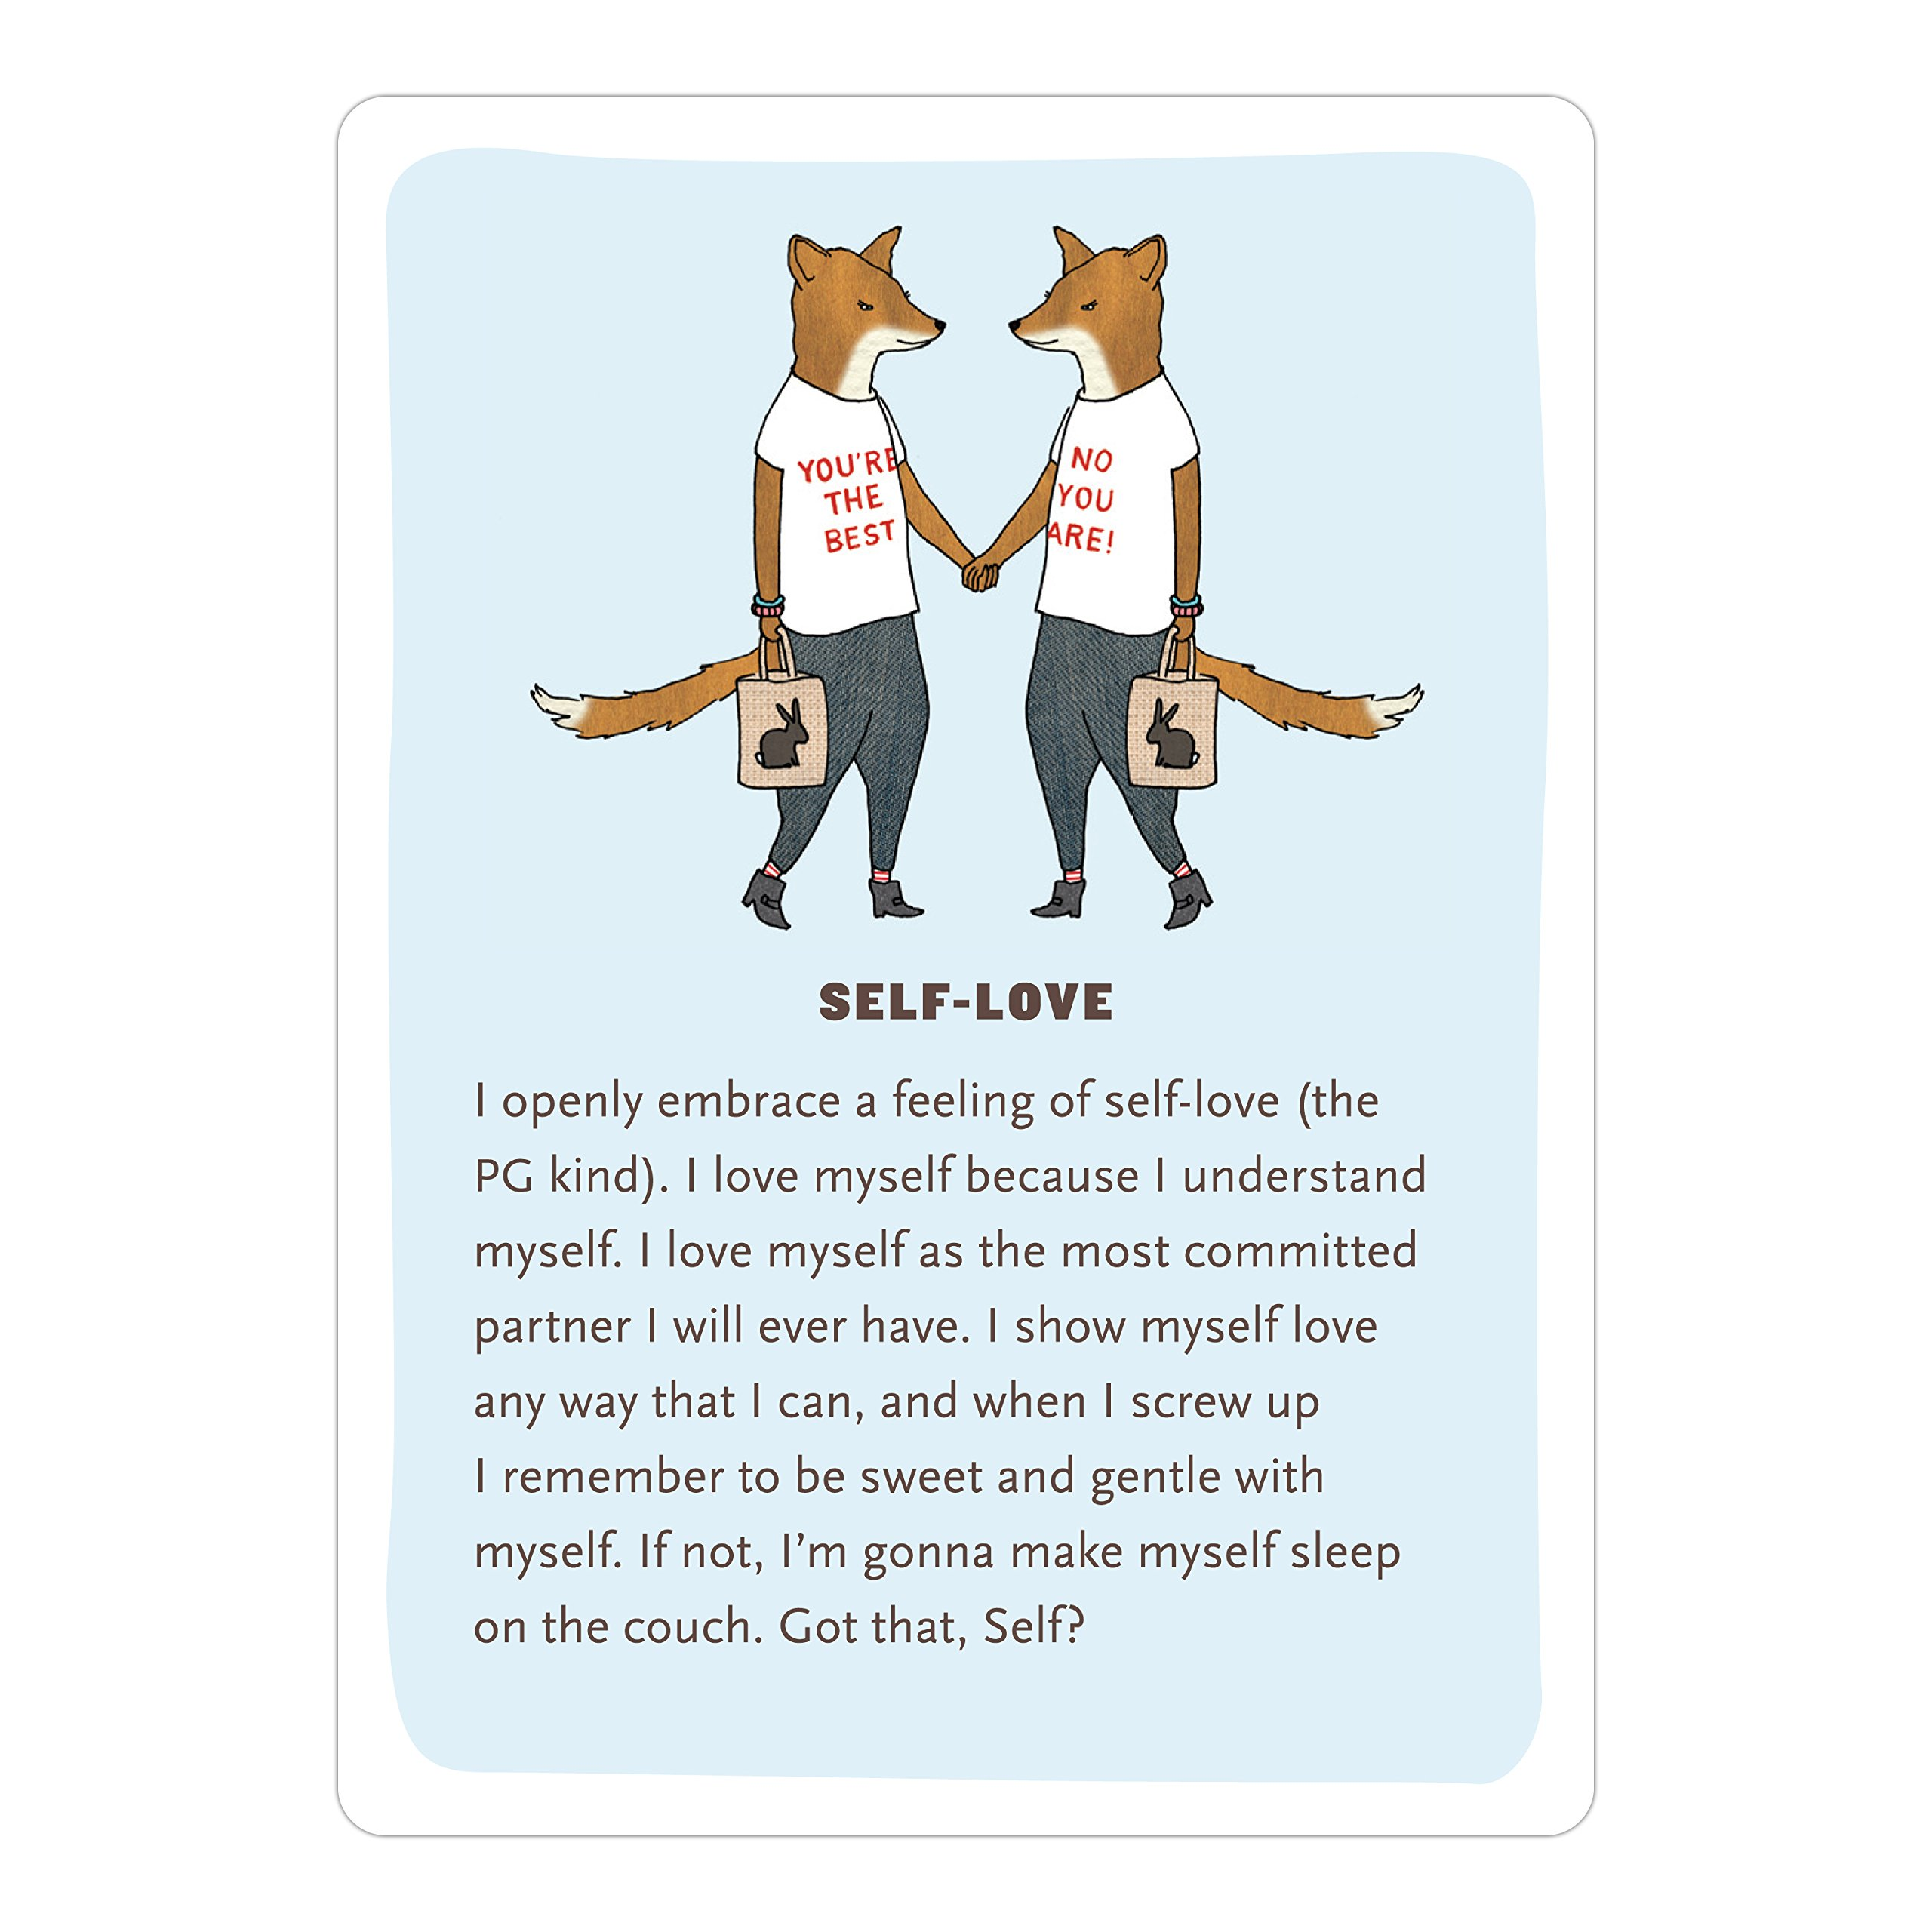 affirmators 50 affirmation cards to help you help yourselfwithout the selfhelpyness